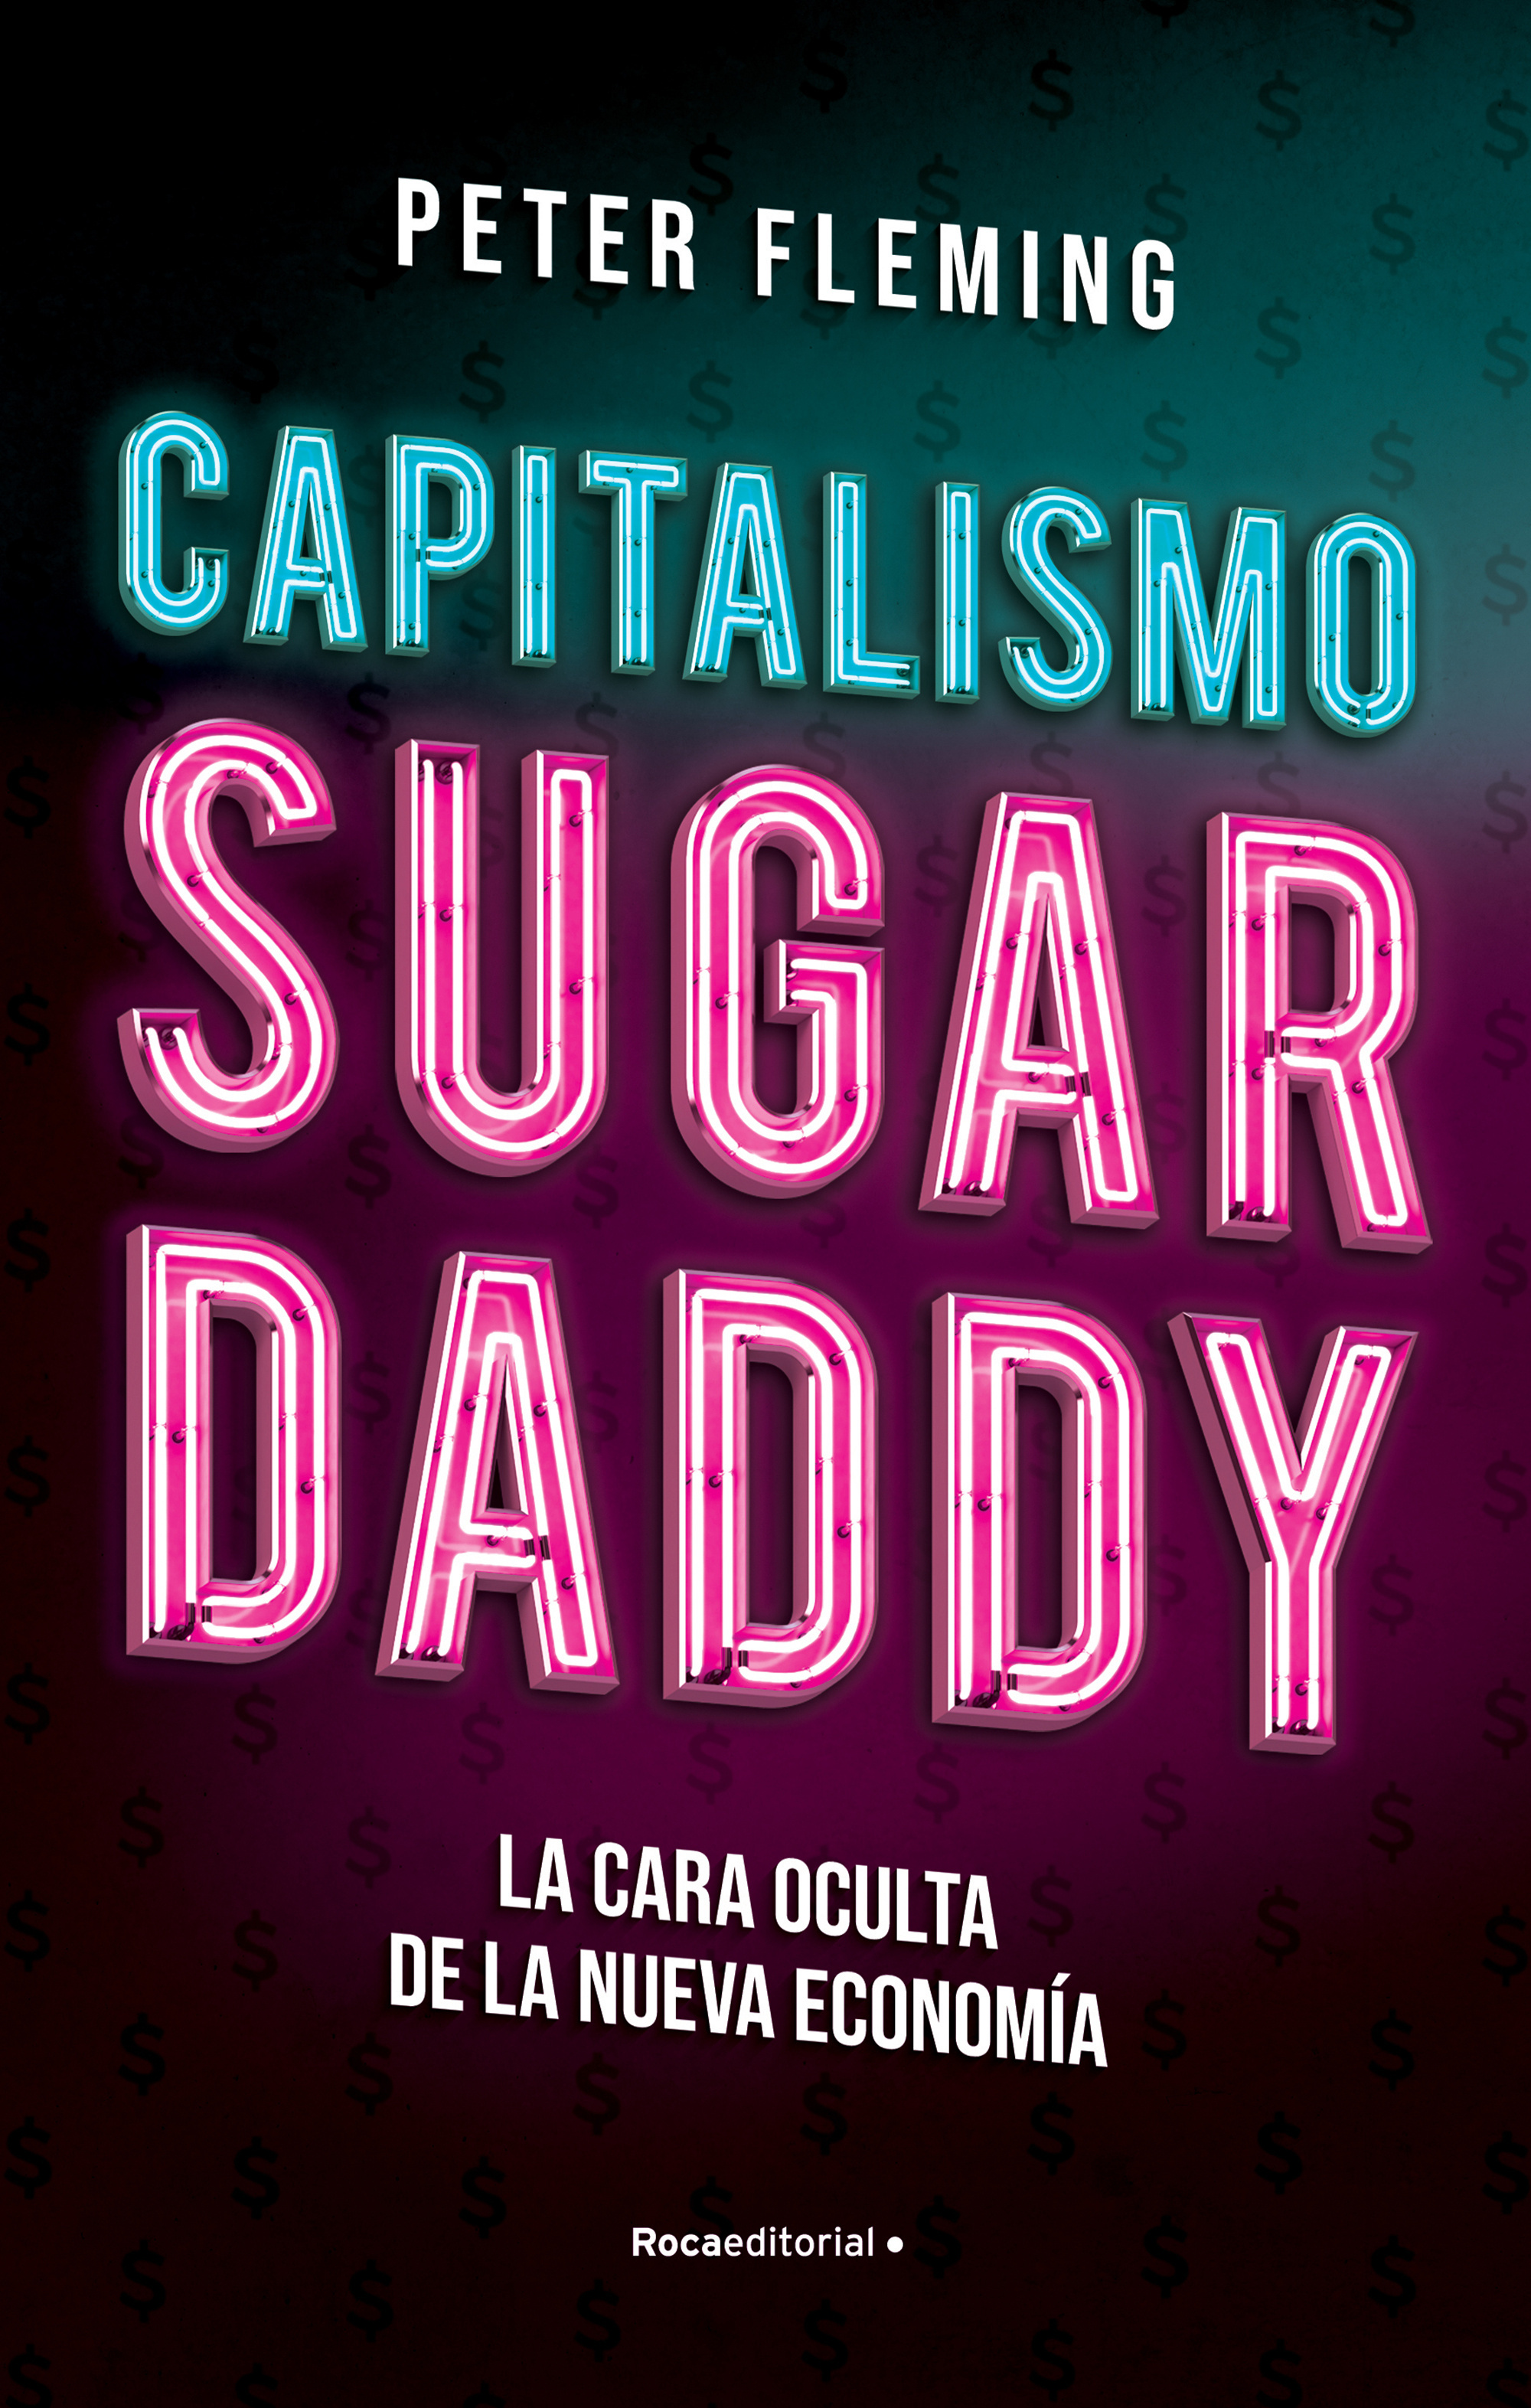 Capitalismo sugar daddy. 9788417968175